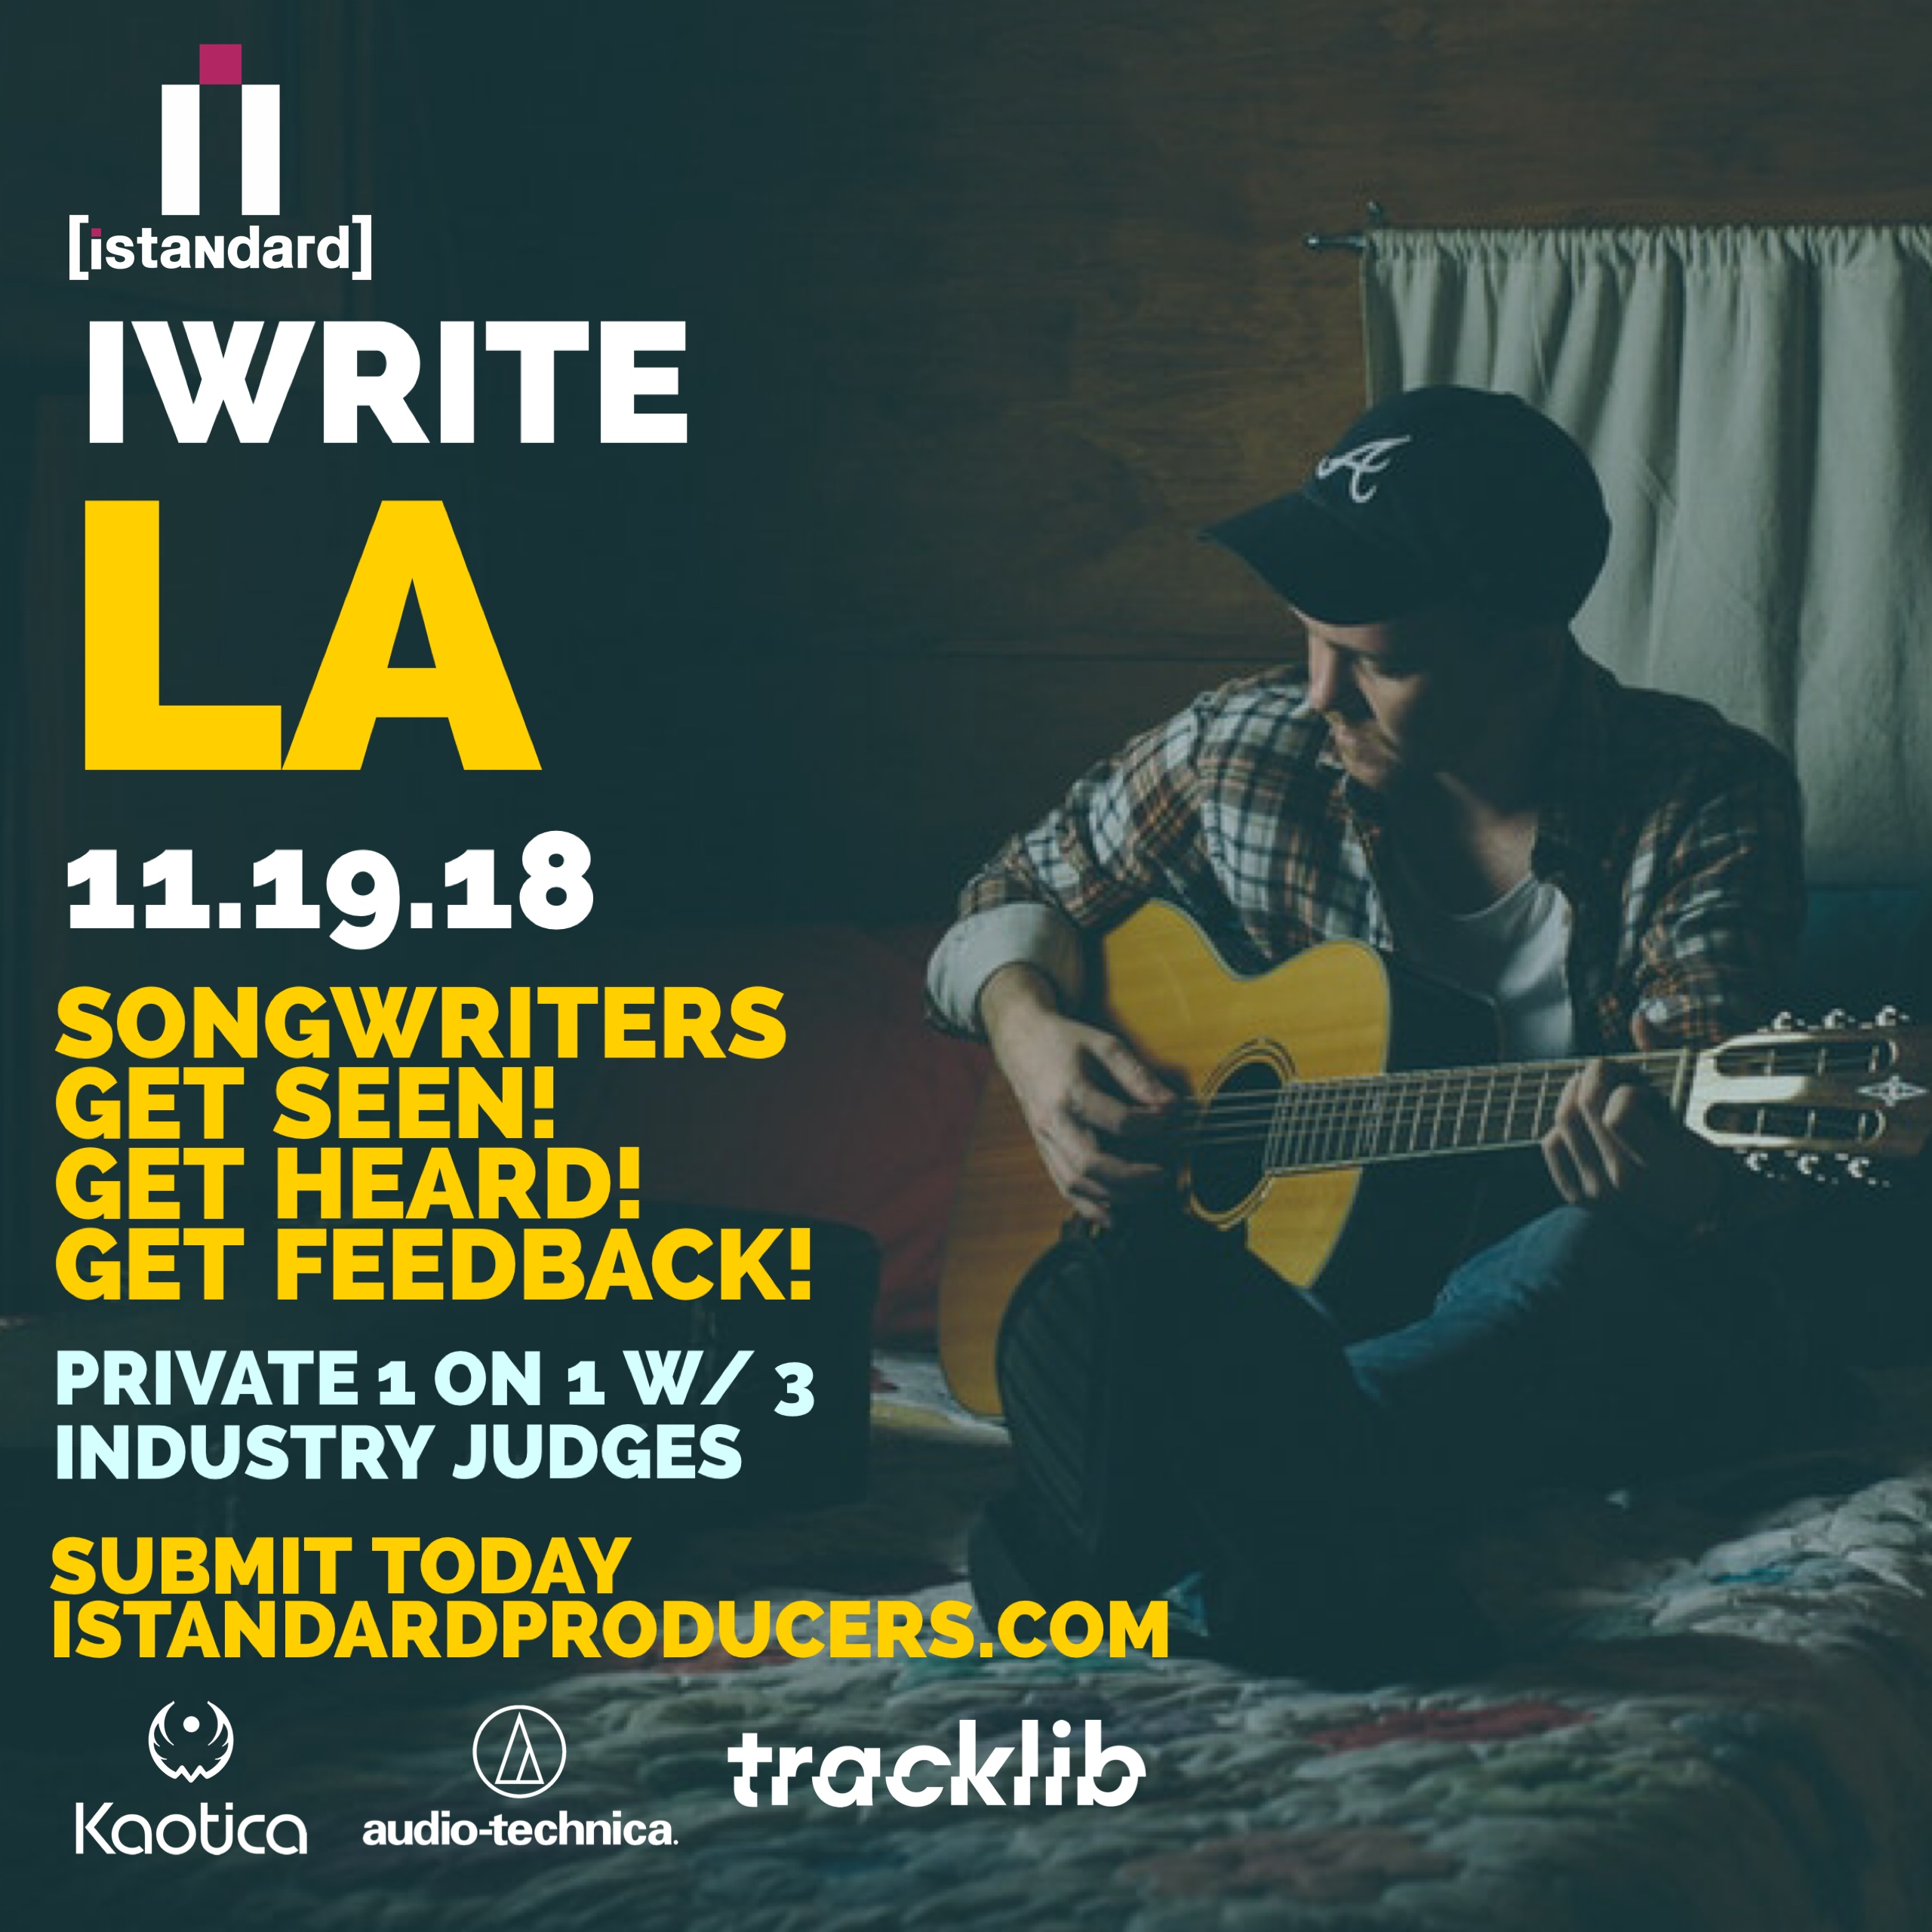 [iwrite songwriter experience - la]